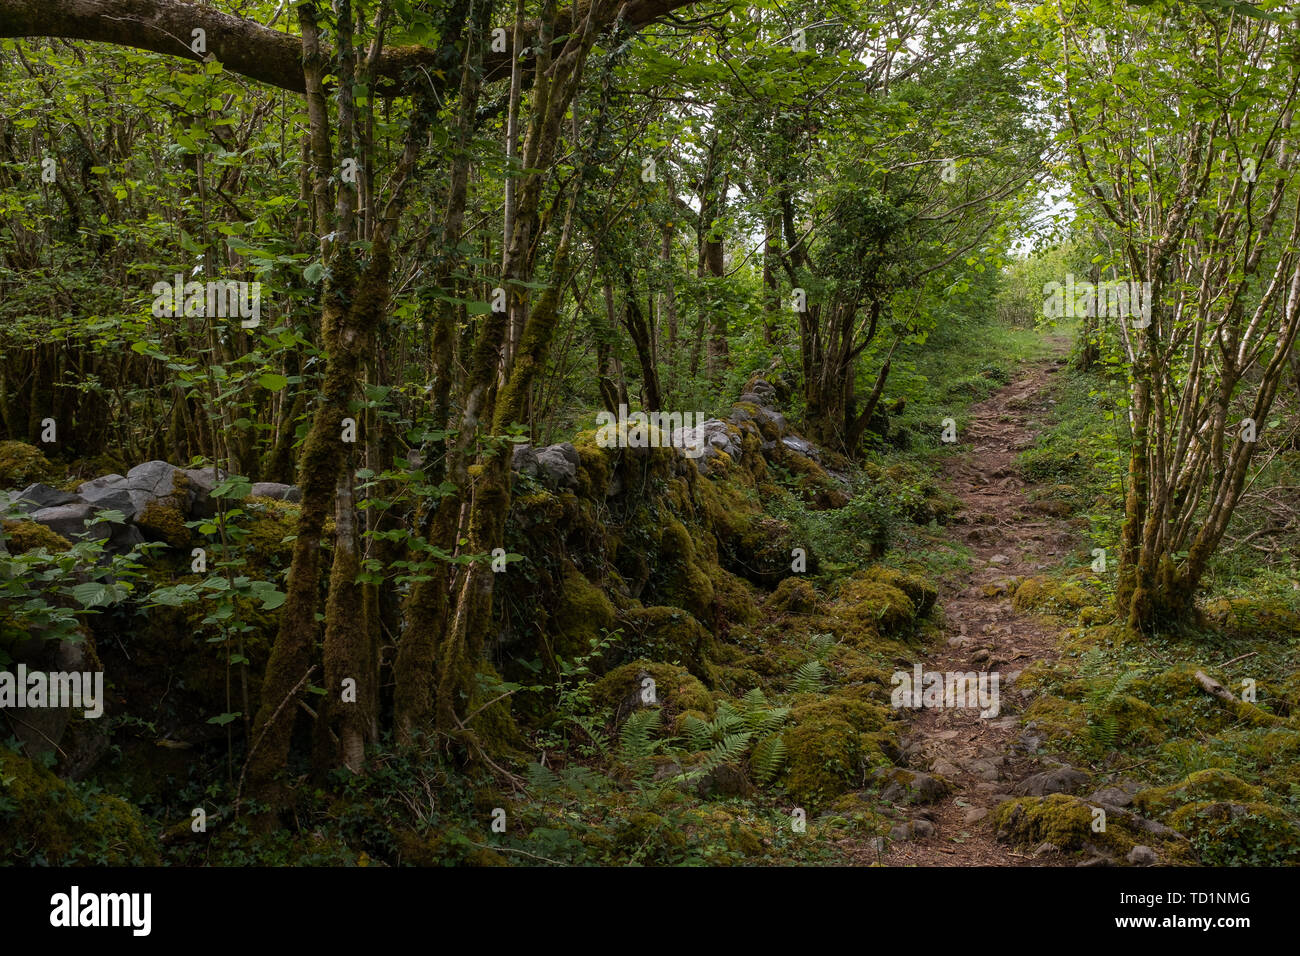 A beautiful moss covered wood walk  in The Burren National Park, County Clare, Ireland that looks like a fairies grotto, nobody in the image - Stock Image